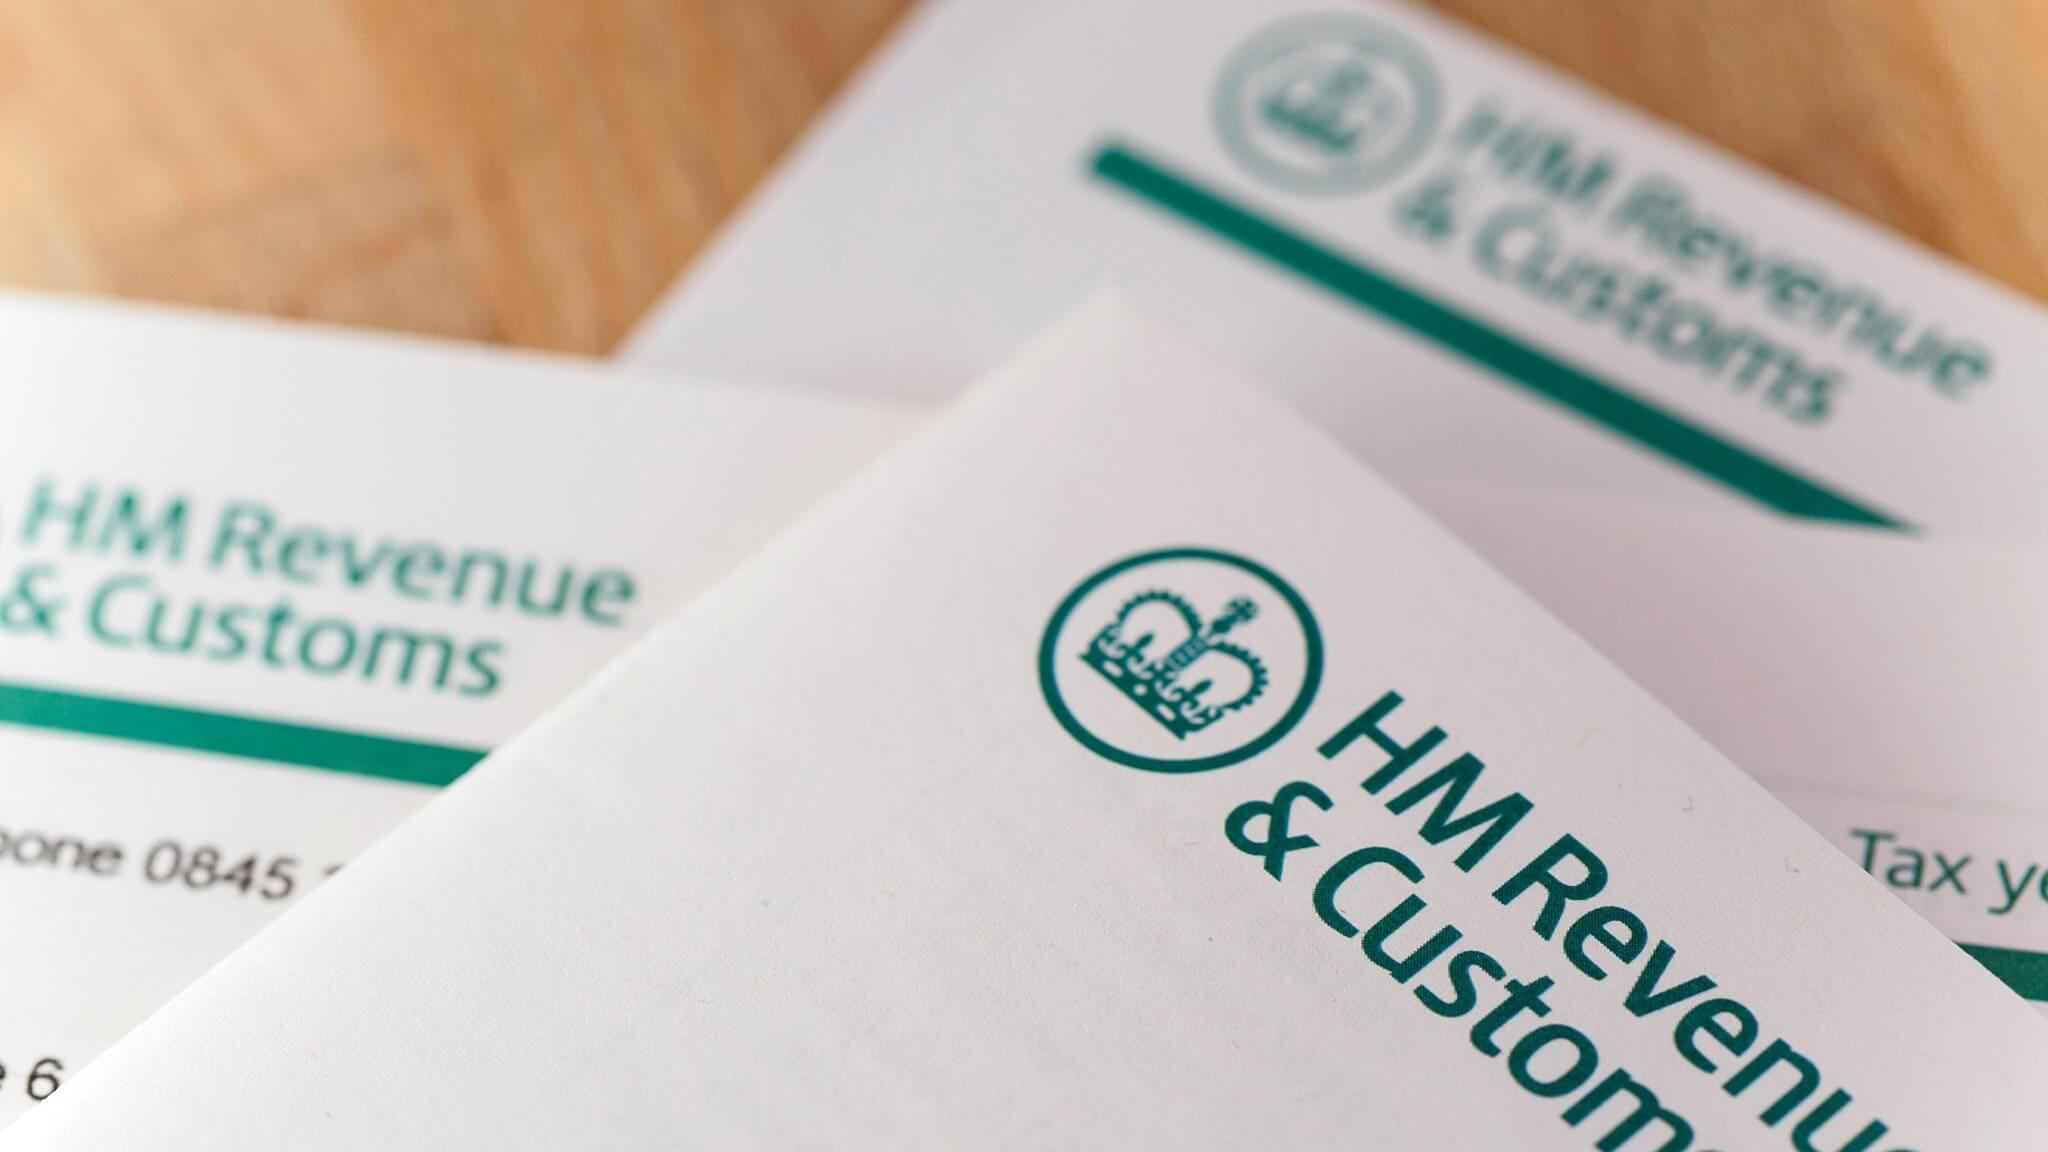 Voices of UK taxpayers stored by HMRC